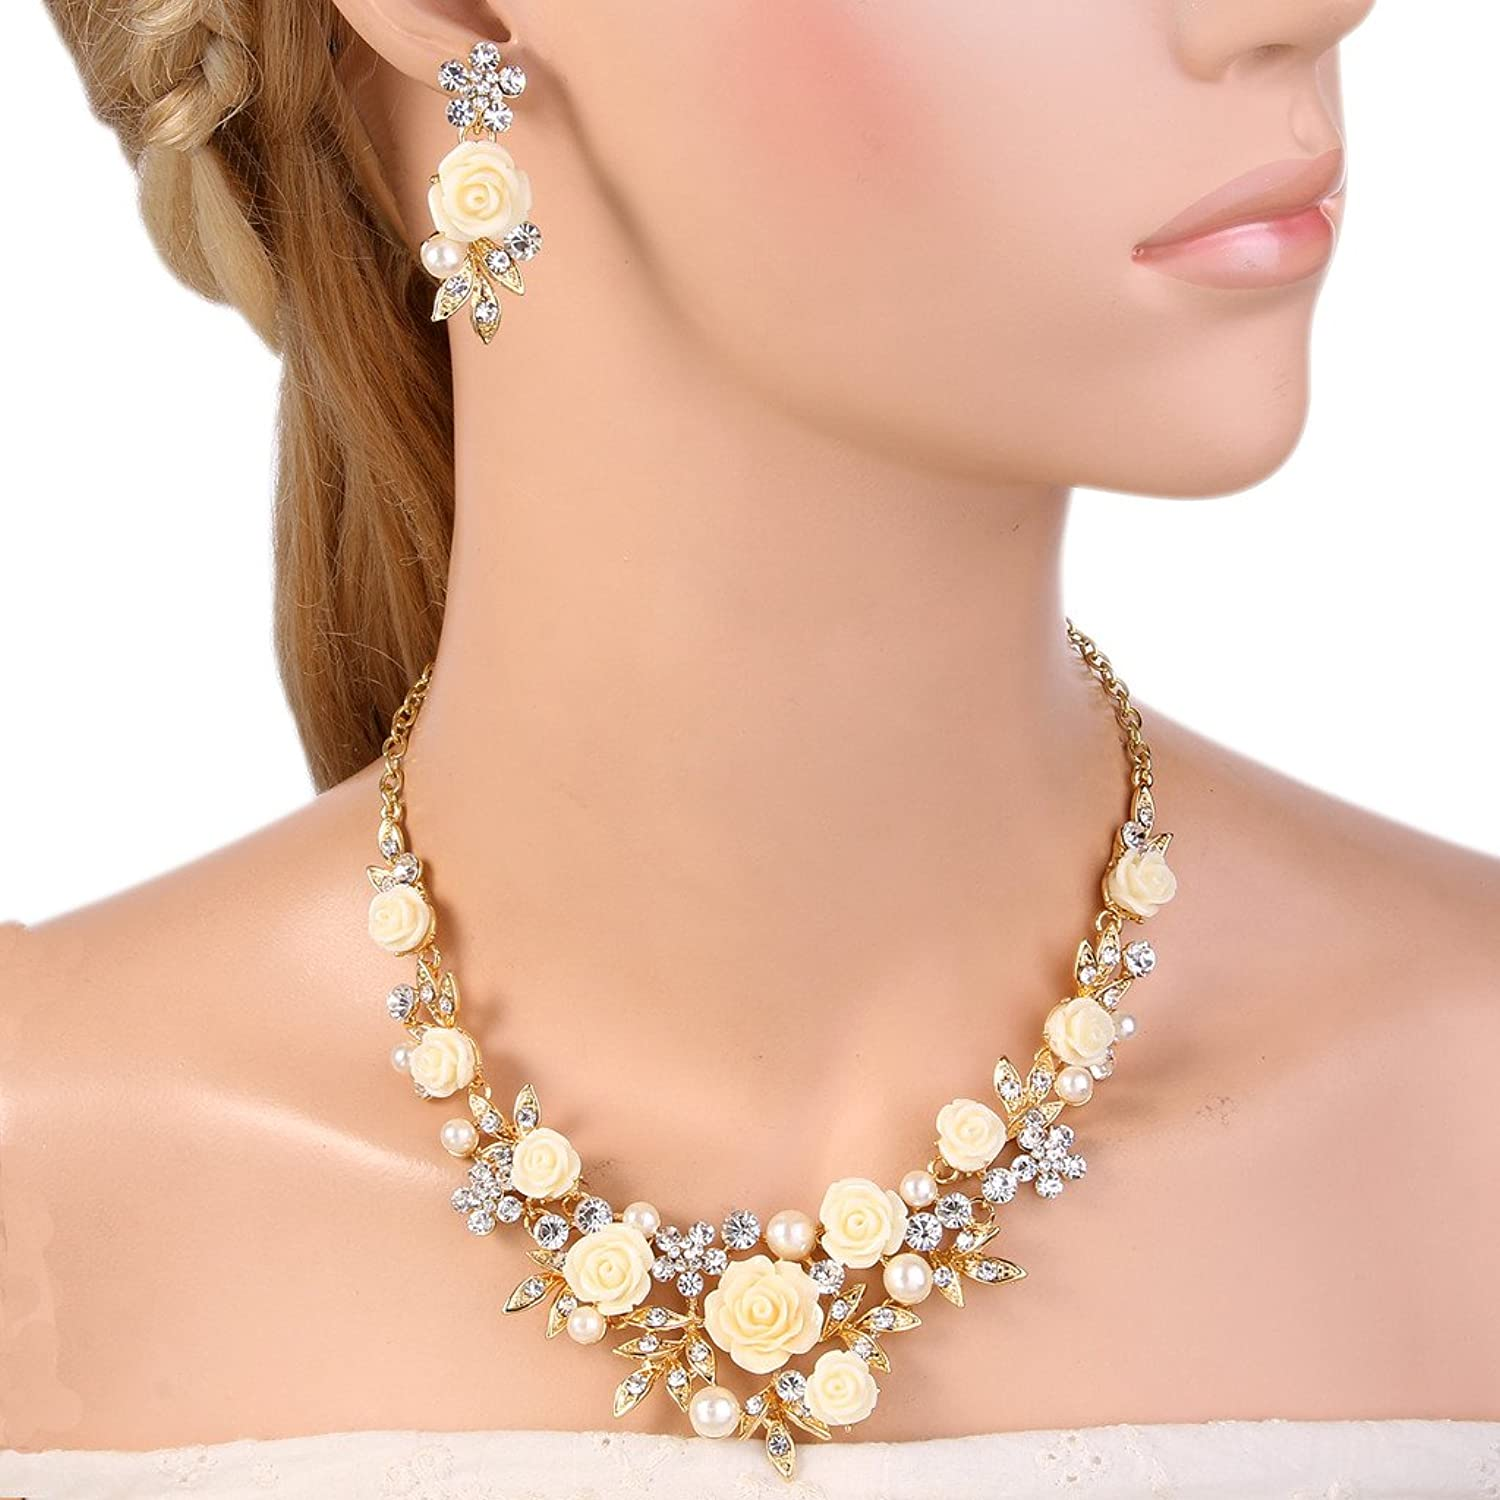 1950s Jewelry Styles and History EVER FAITH Womens Austrian Crystal Simulated Pearl Rose Flower Leaf Necklace Earrings Set $22.99 AT vintagedancer.com